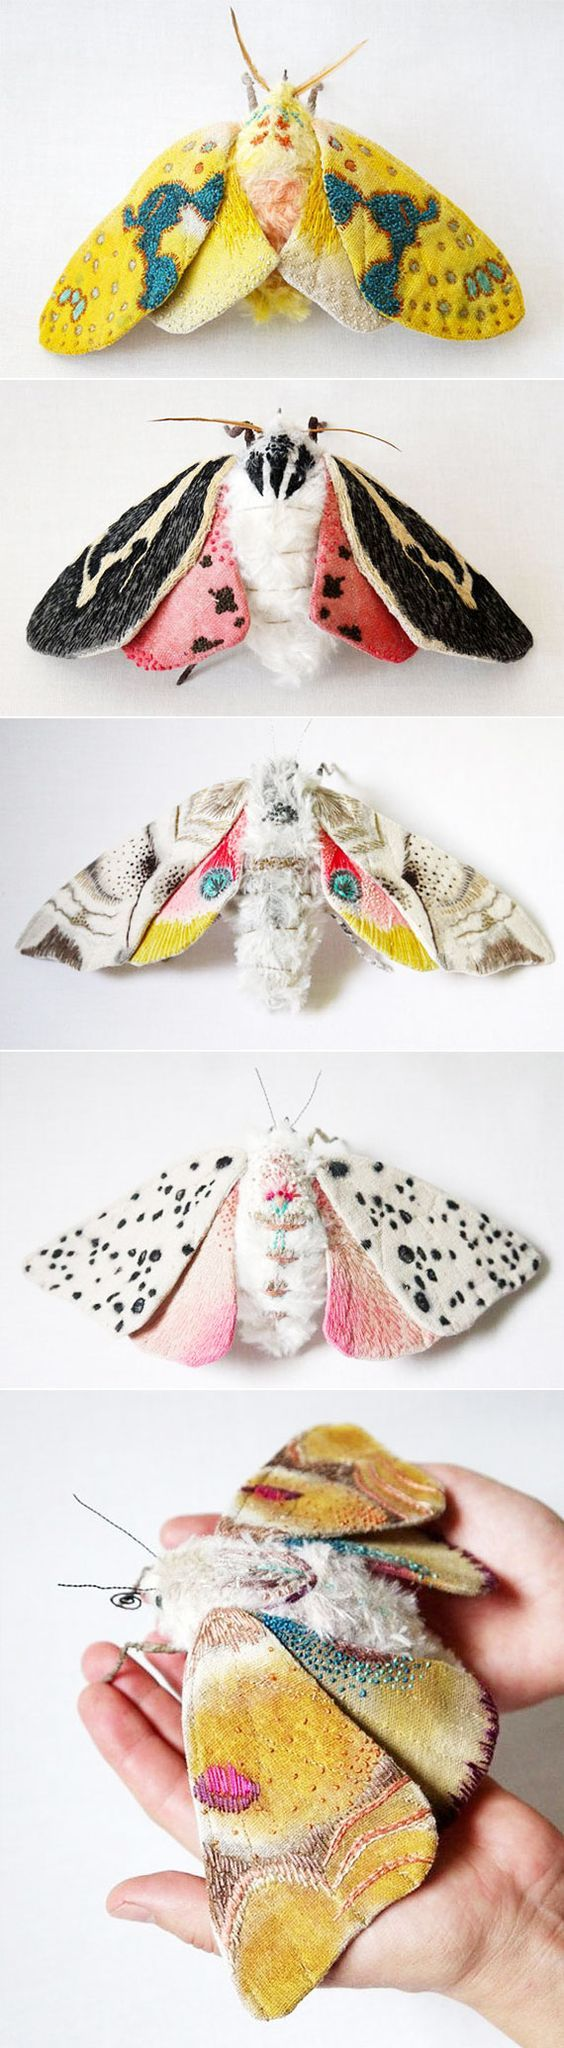 Small Moths In Bedroom 318 Curated Bugs Ideas By Ultramarinbloo Madagascar Photographs